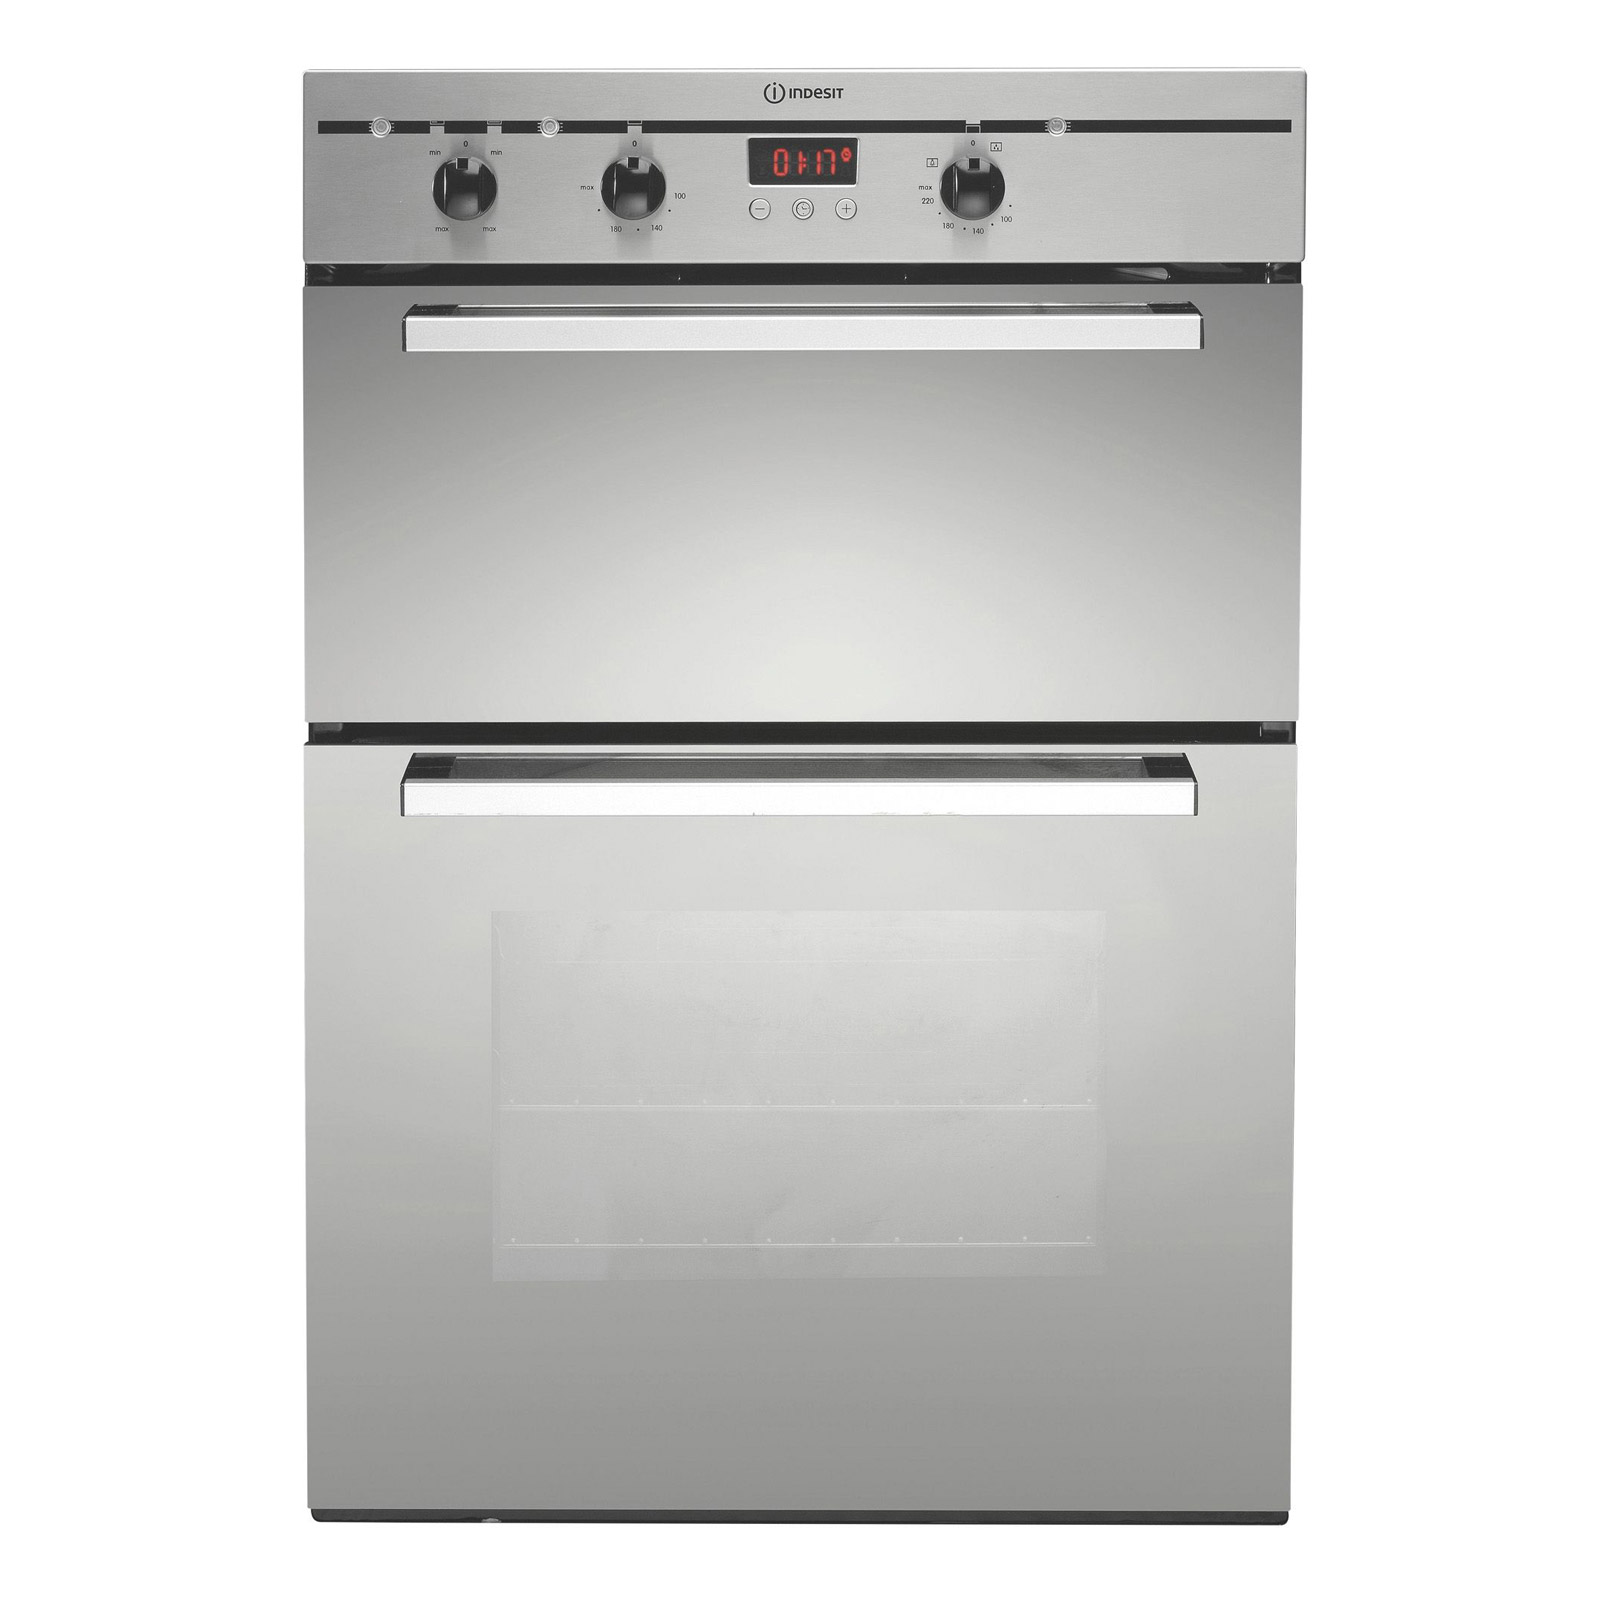 Indesit BIMDS23BIXS Built In Electric Double Oven in Stainless Steel